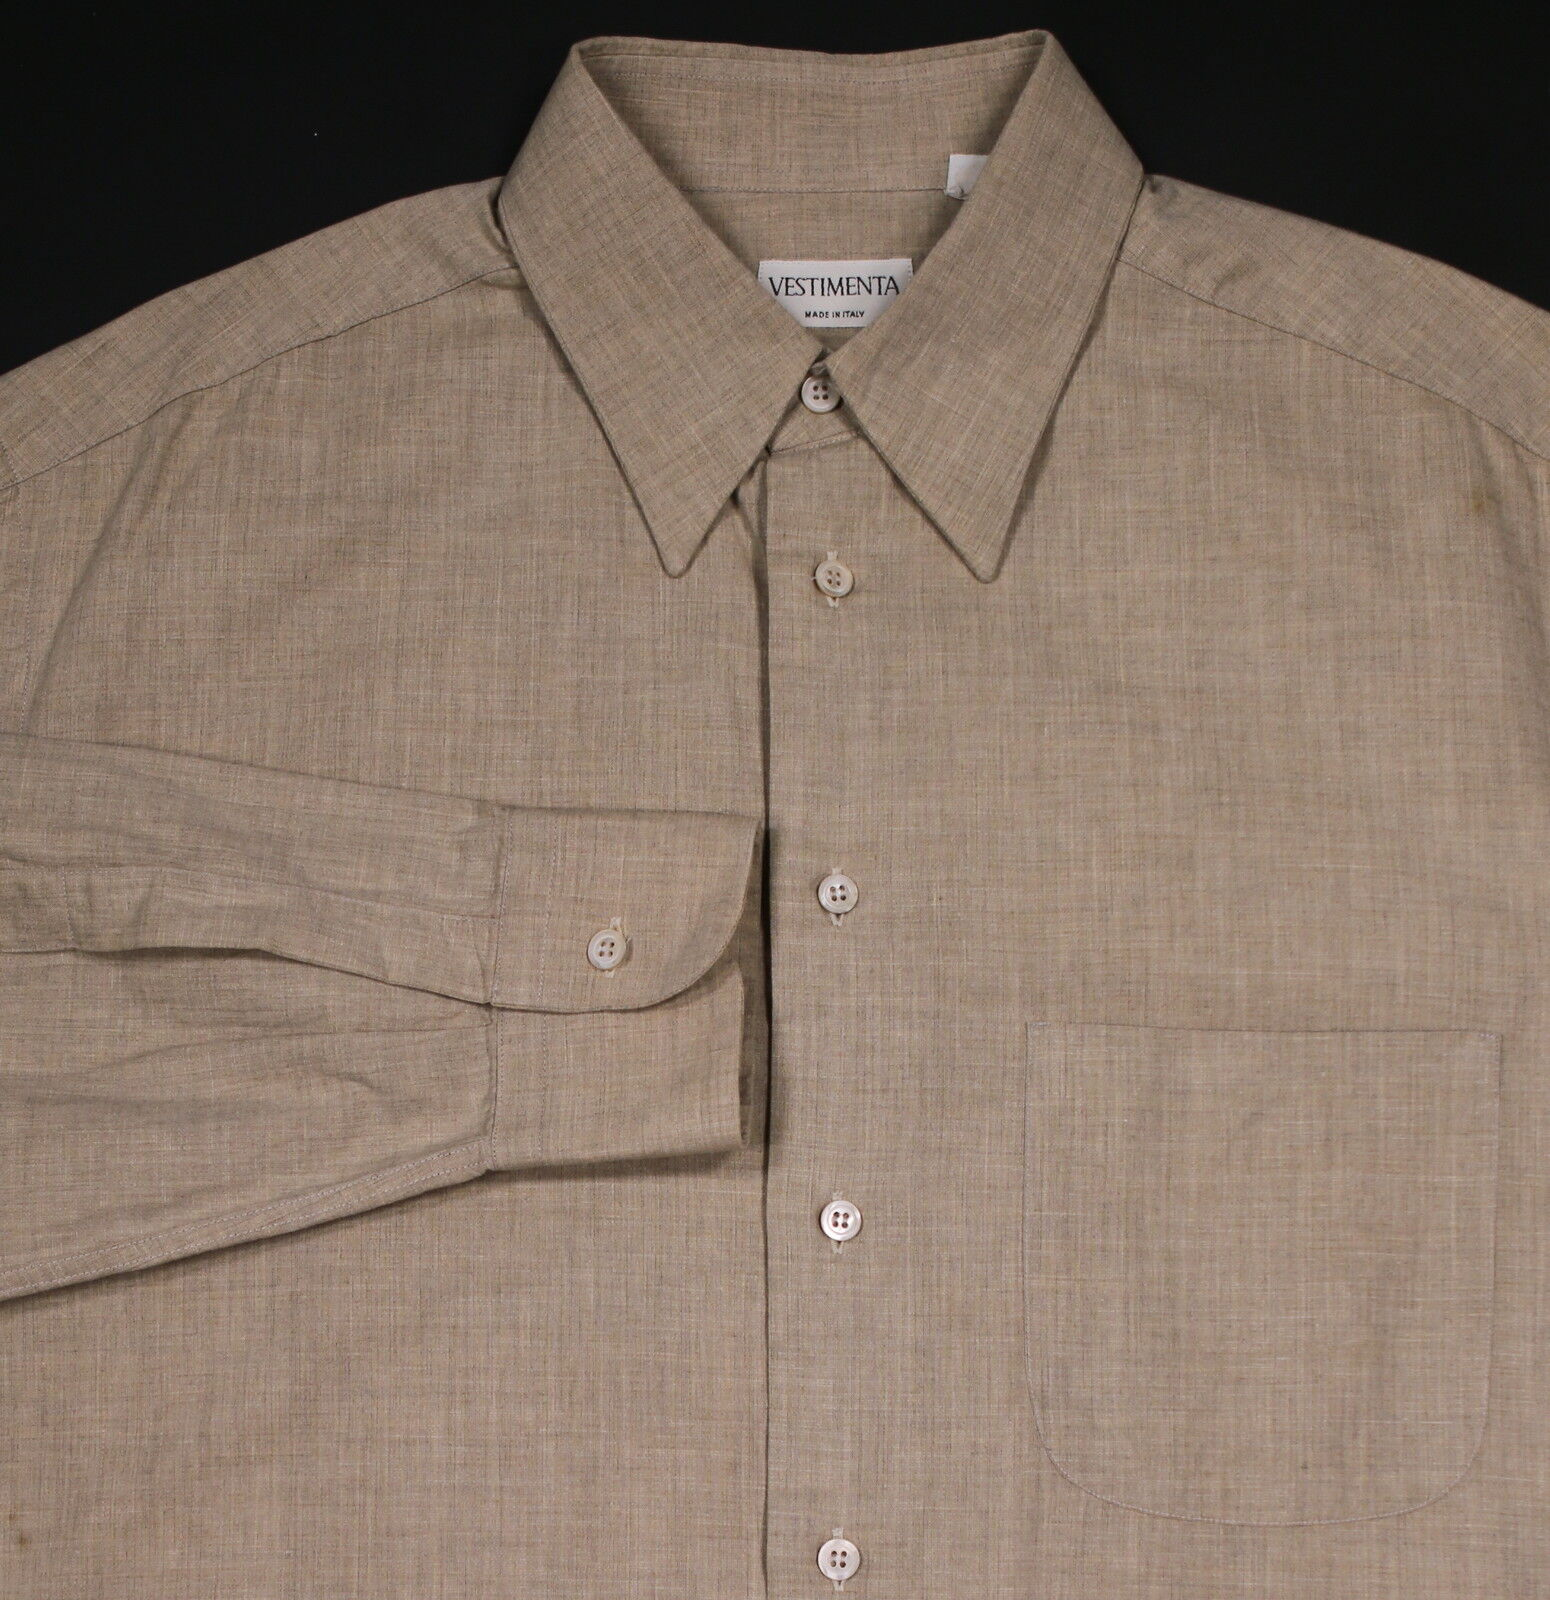 VESTIMENTA Solid Sandy Beige Cotton-Viscose Dress Shirt (41) 16-36